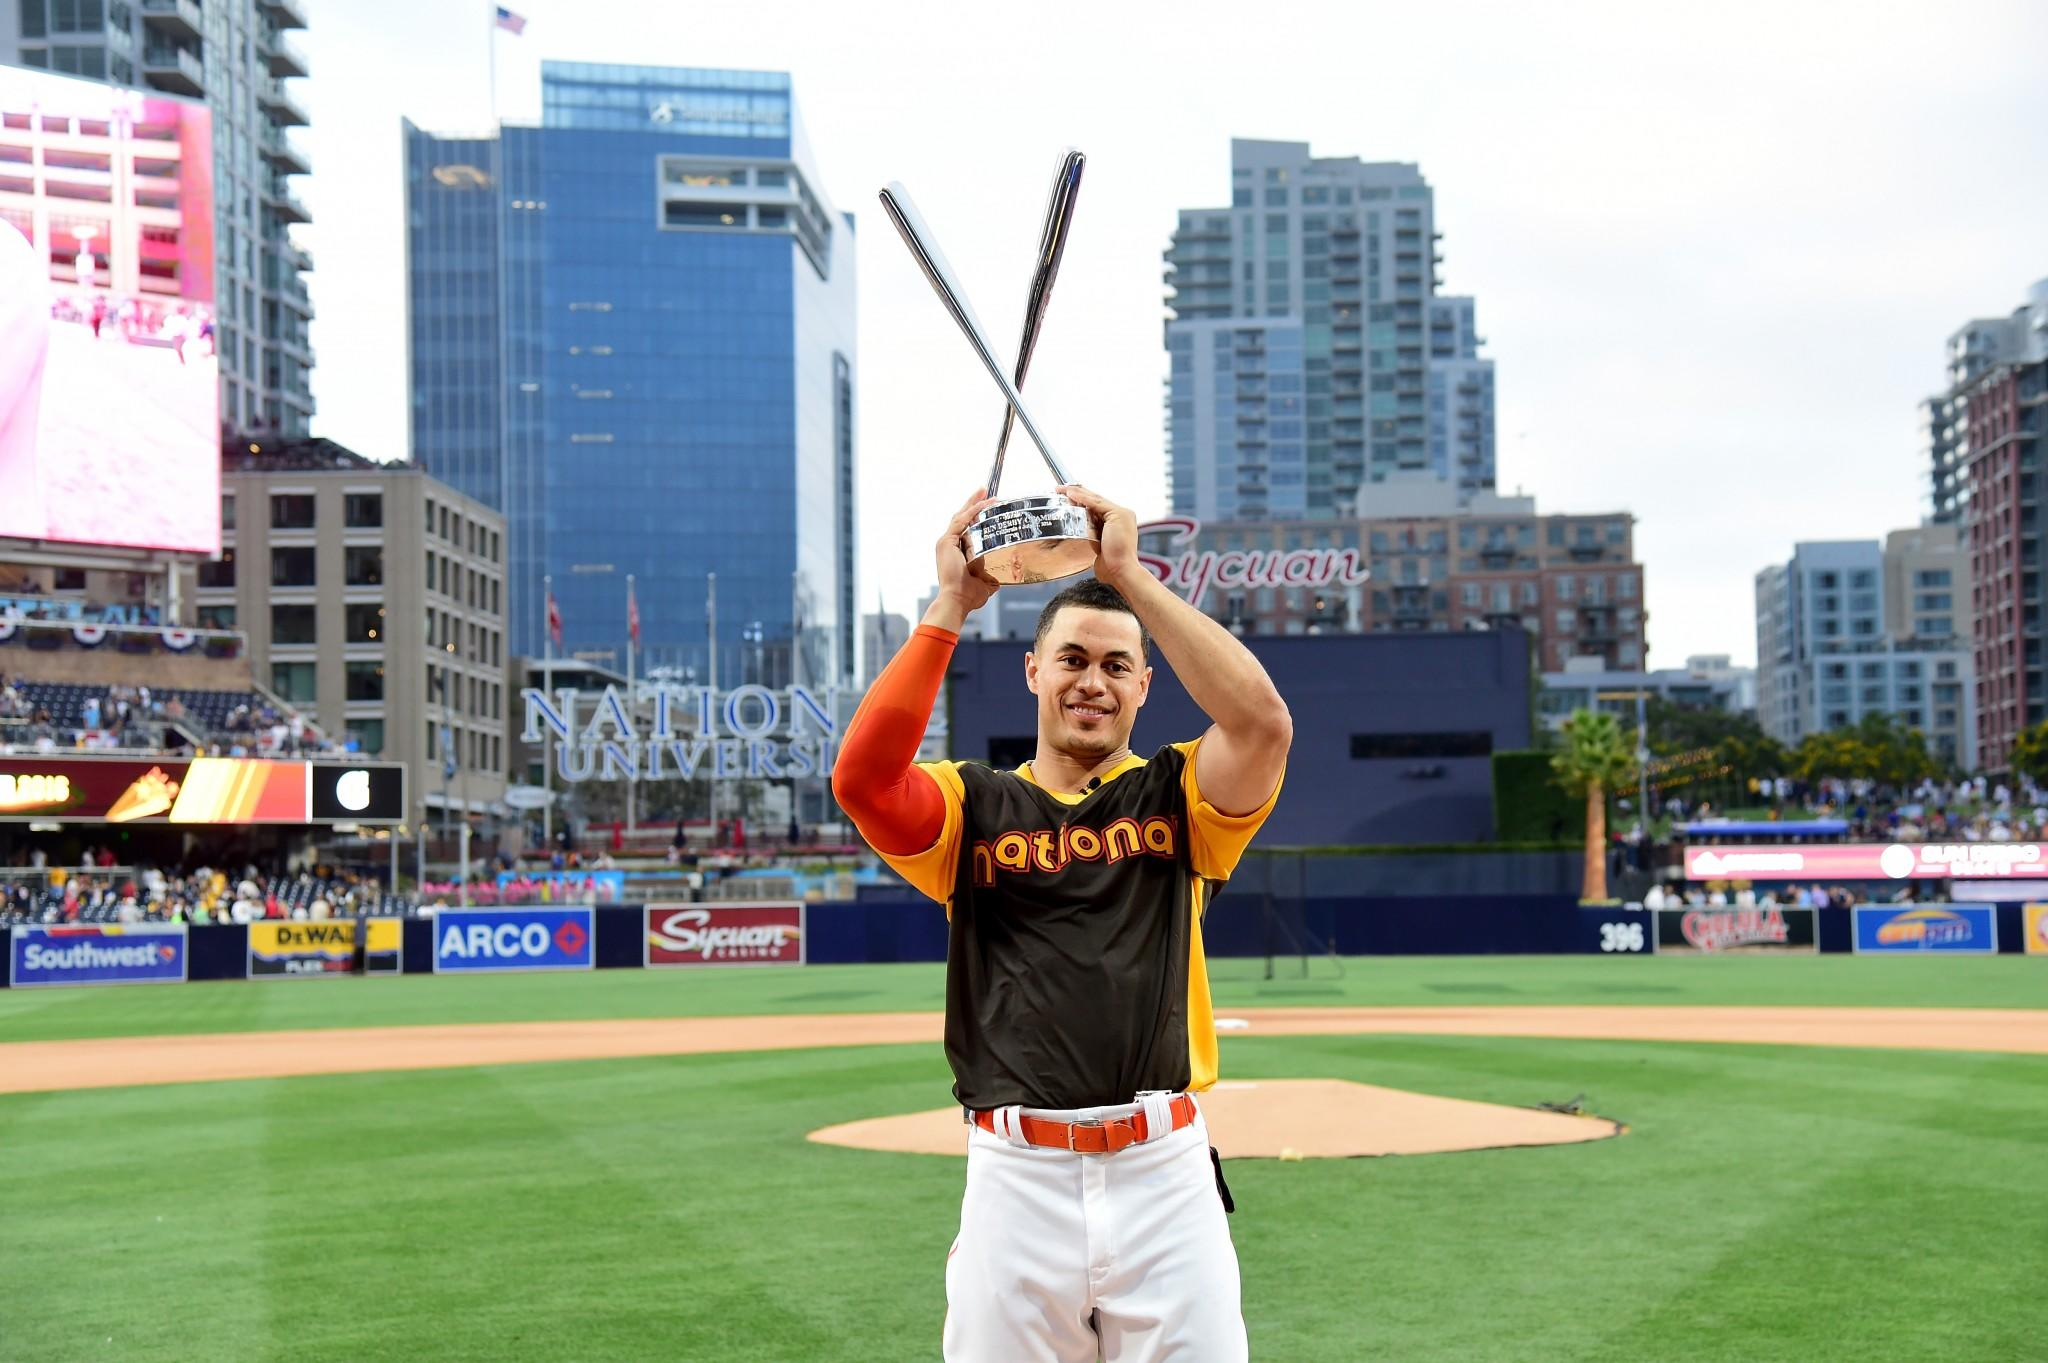 Giancarlo Stanton gave us the greatest Home Run Derby show ever